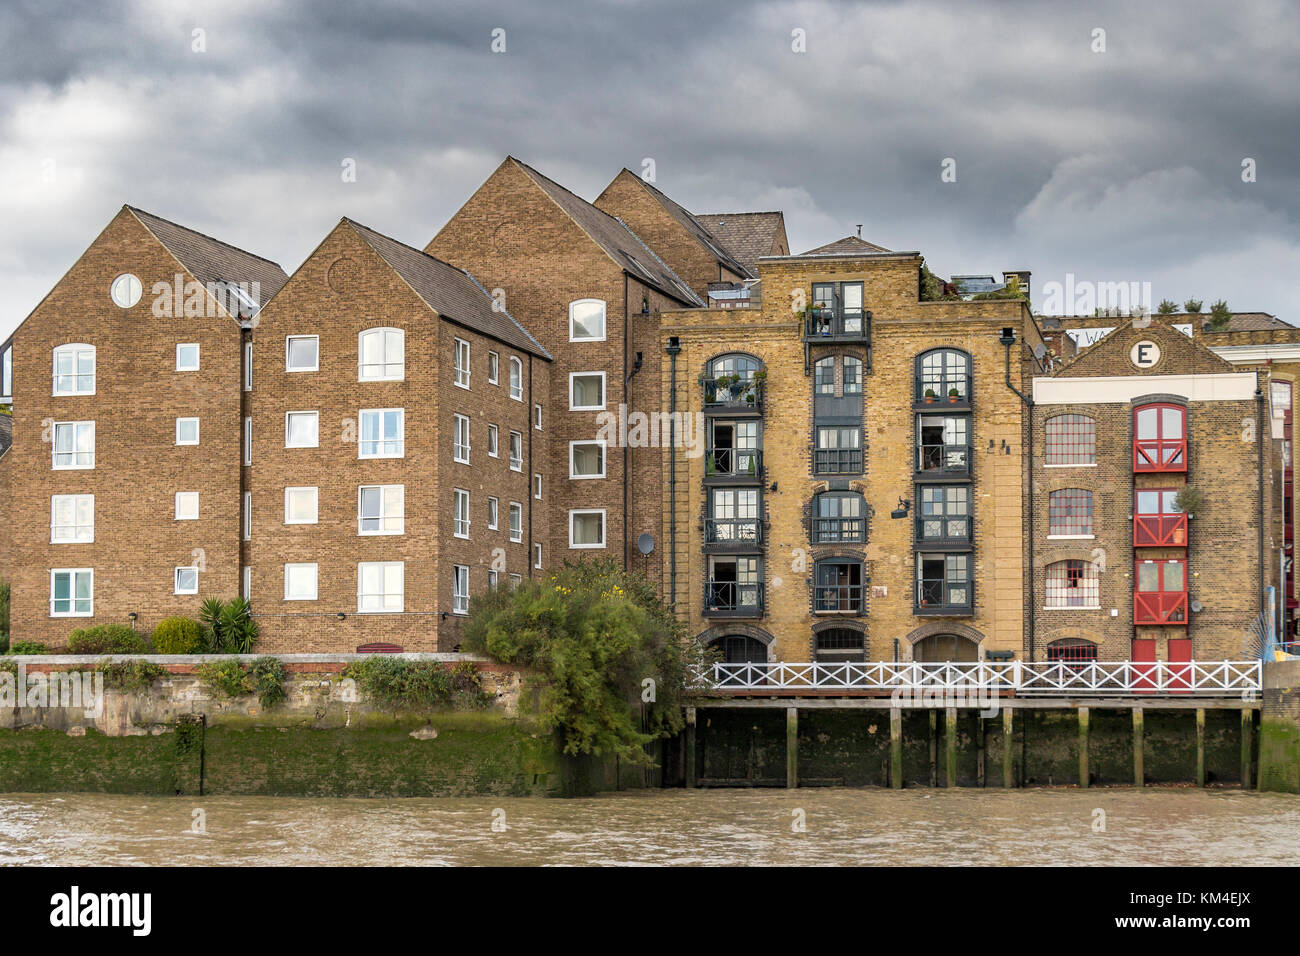 Riverside Apartments and Flats Overlooking the River Thames, Docklands ,London Stock Photo